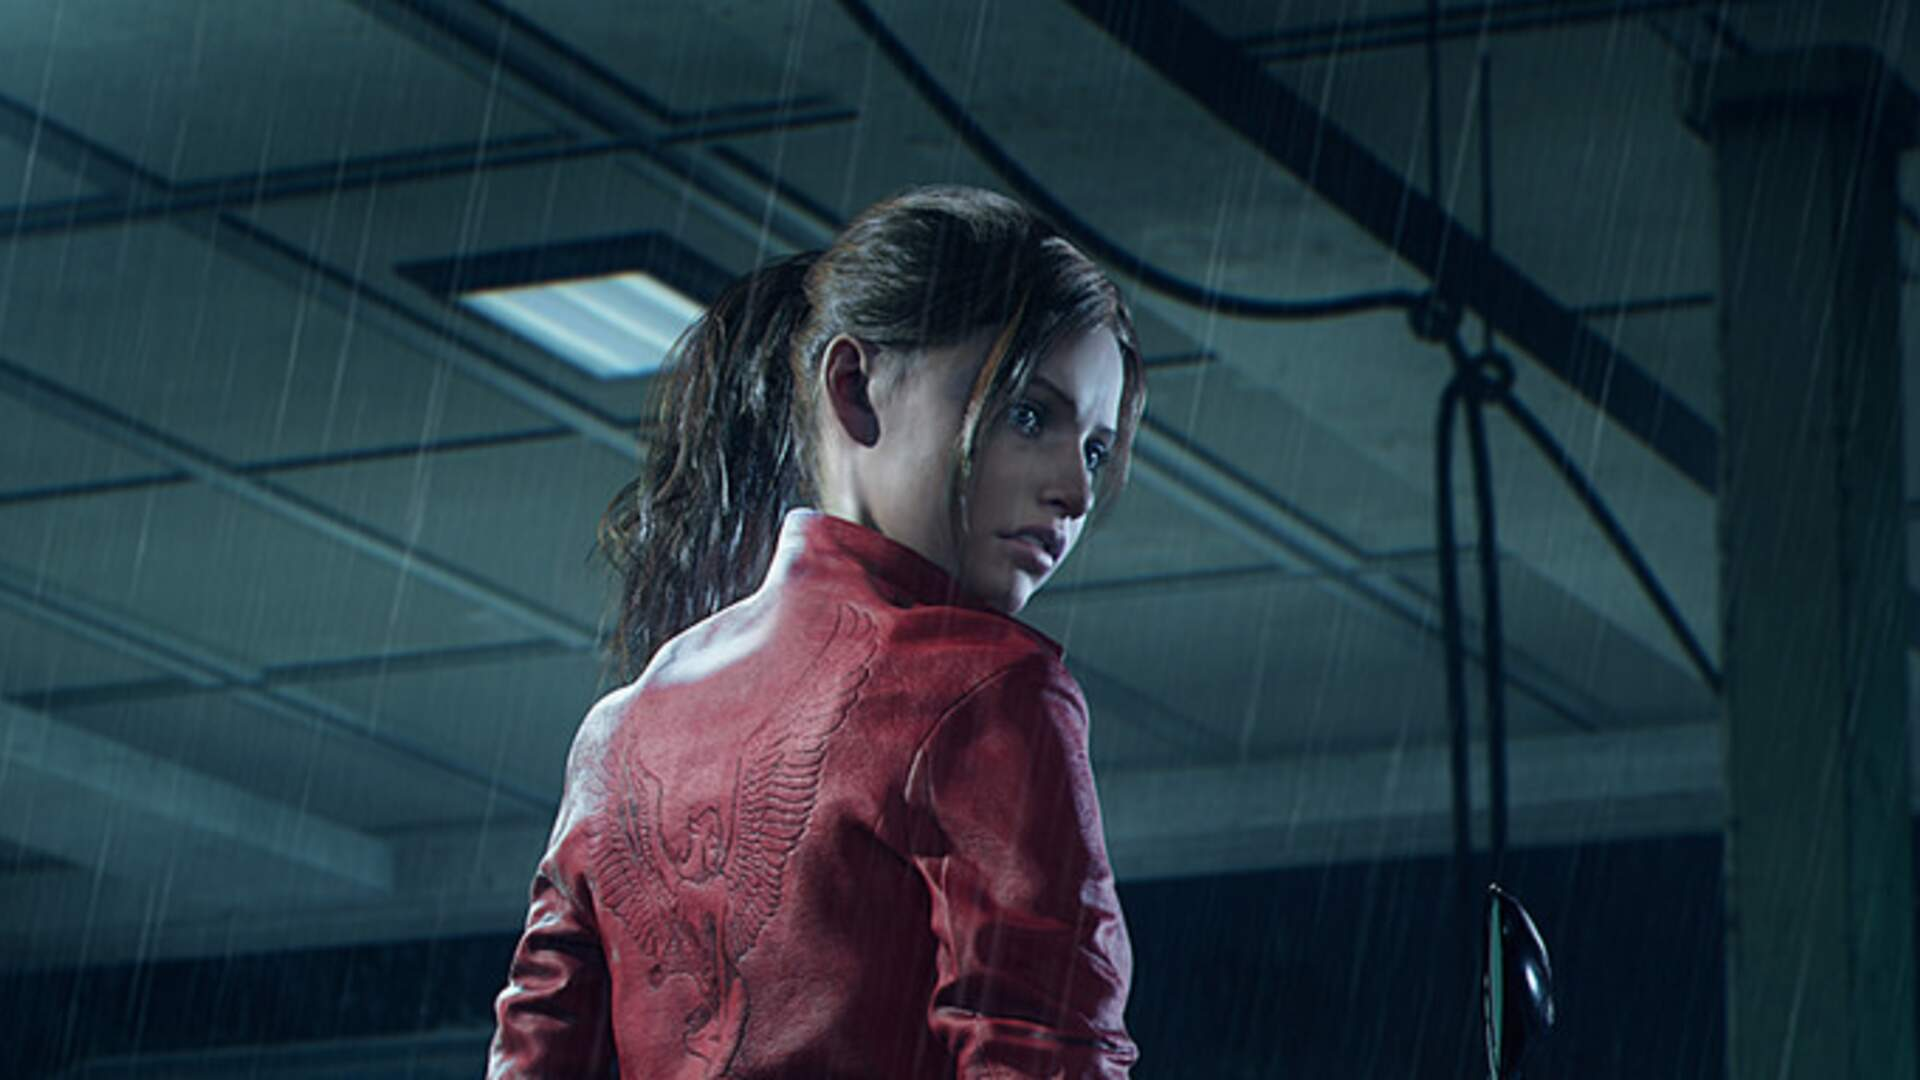 New Resident Evil 2 Remake SDCC Details: Claire's New Design, Box Art, and $200 Collector's Edition